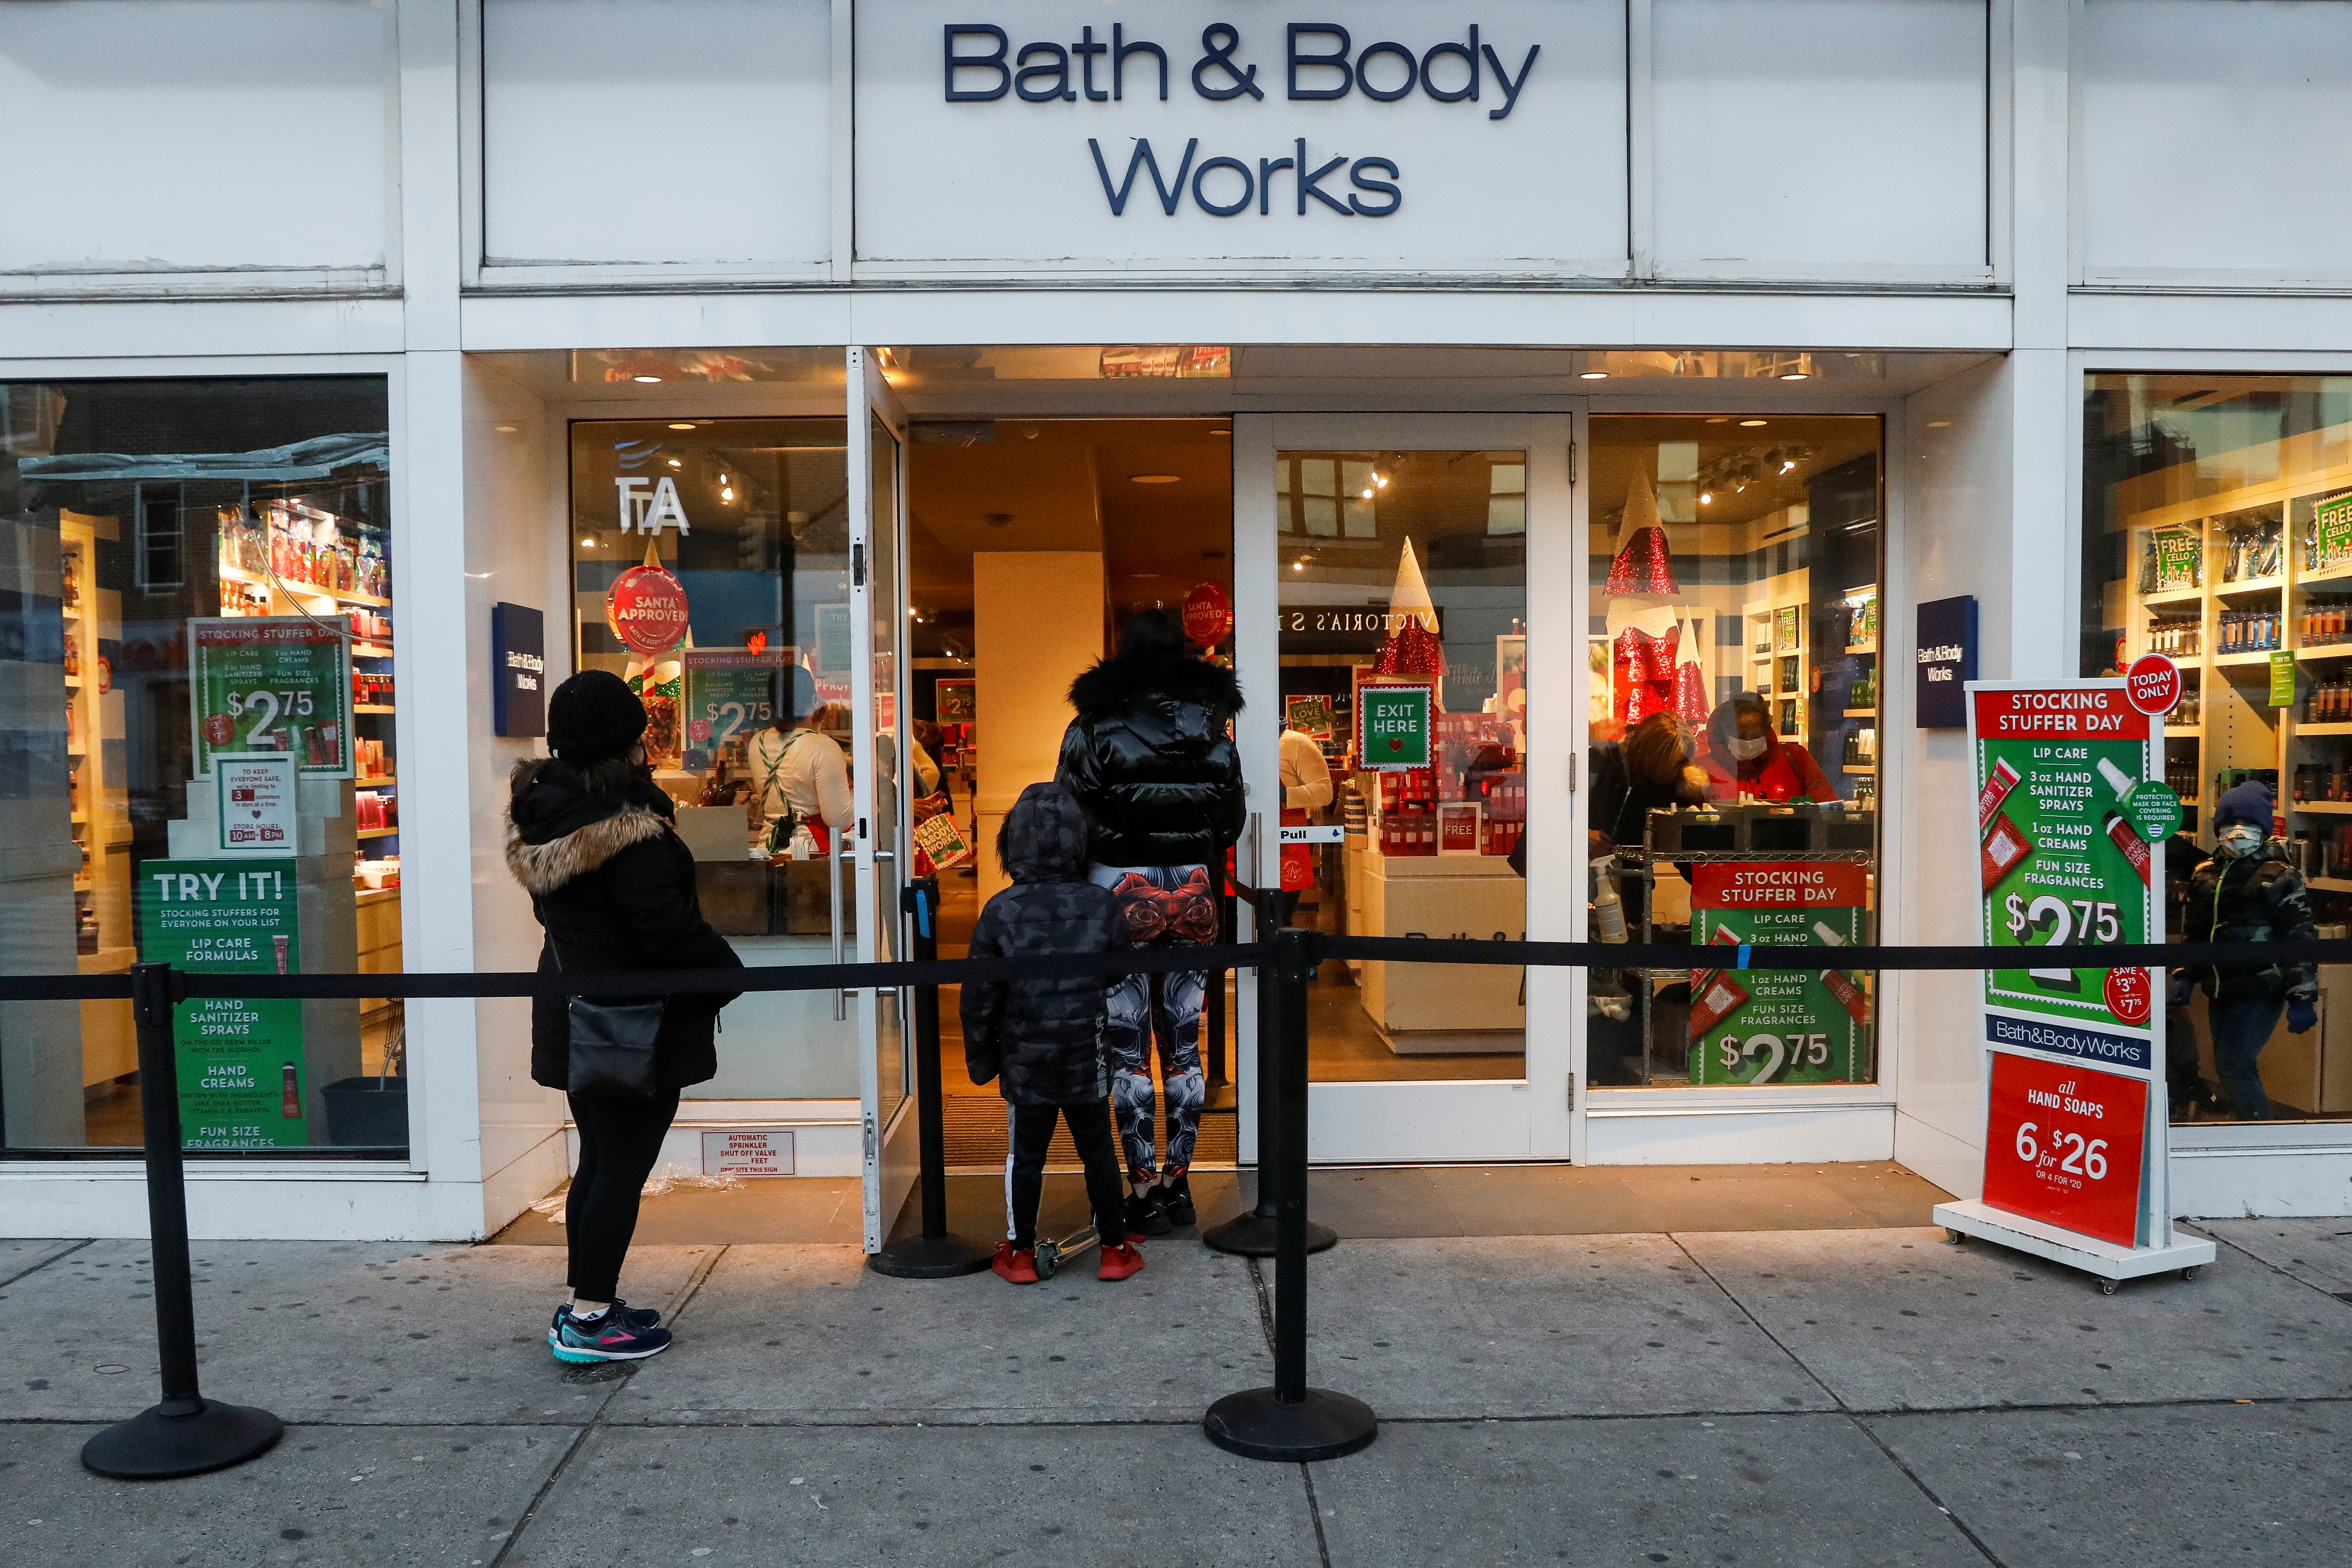 Shoppers wait in line outside a Bath and Body Works retail store, as the global outbreak of the coronavirus disease (COVID-19) continues,  in Brooklyn, New York, U.S., December 8, 2020.  REUTERS/Brendan McDermid